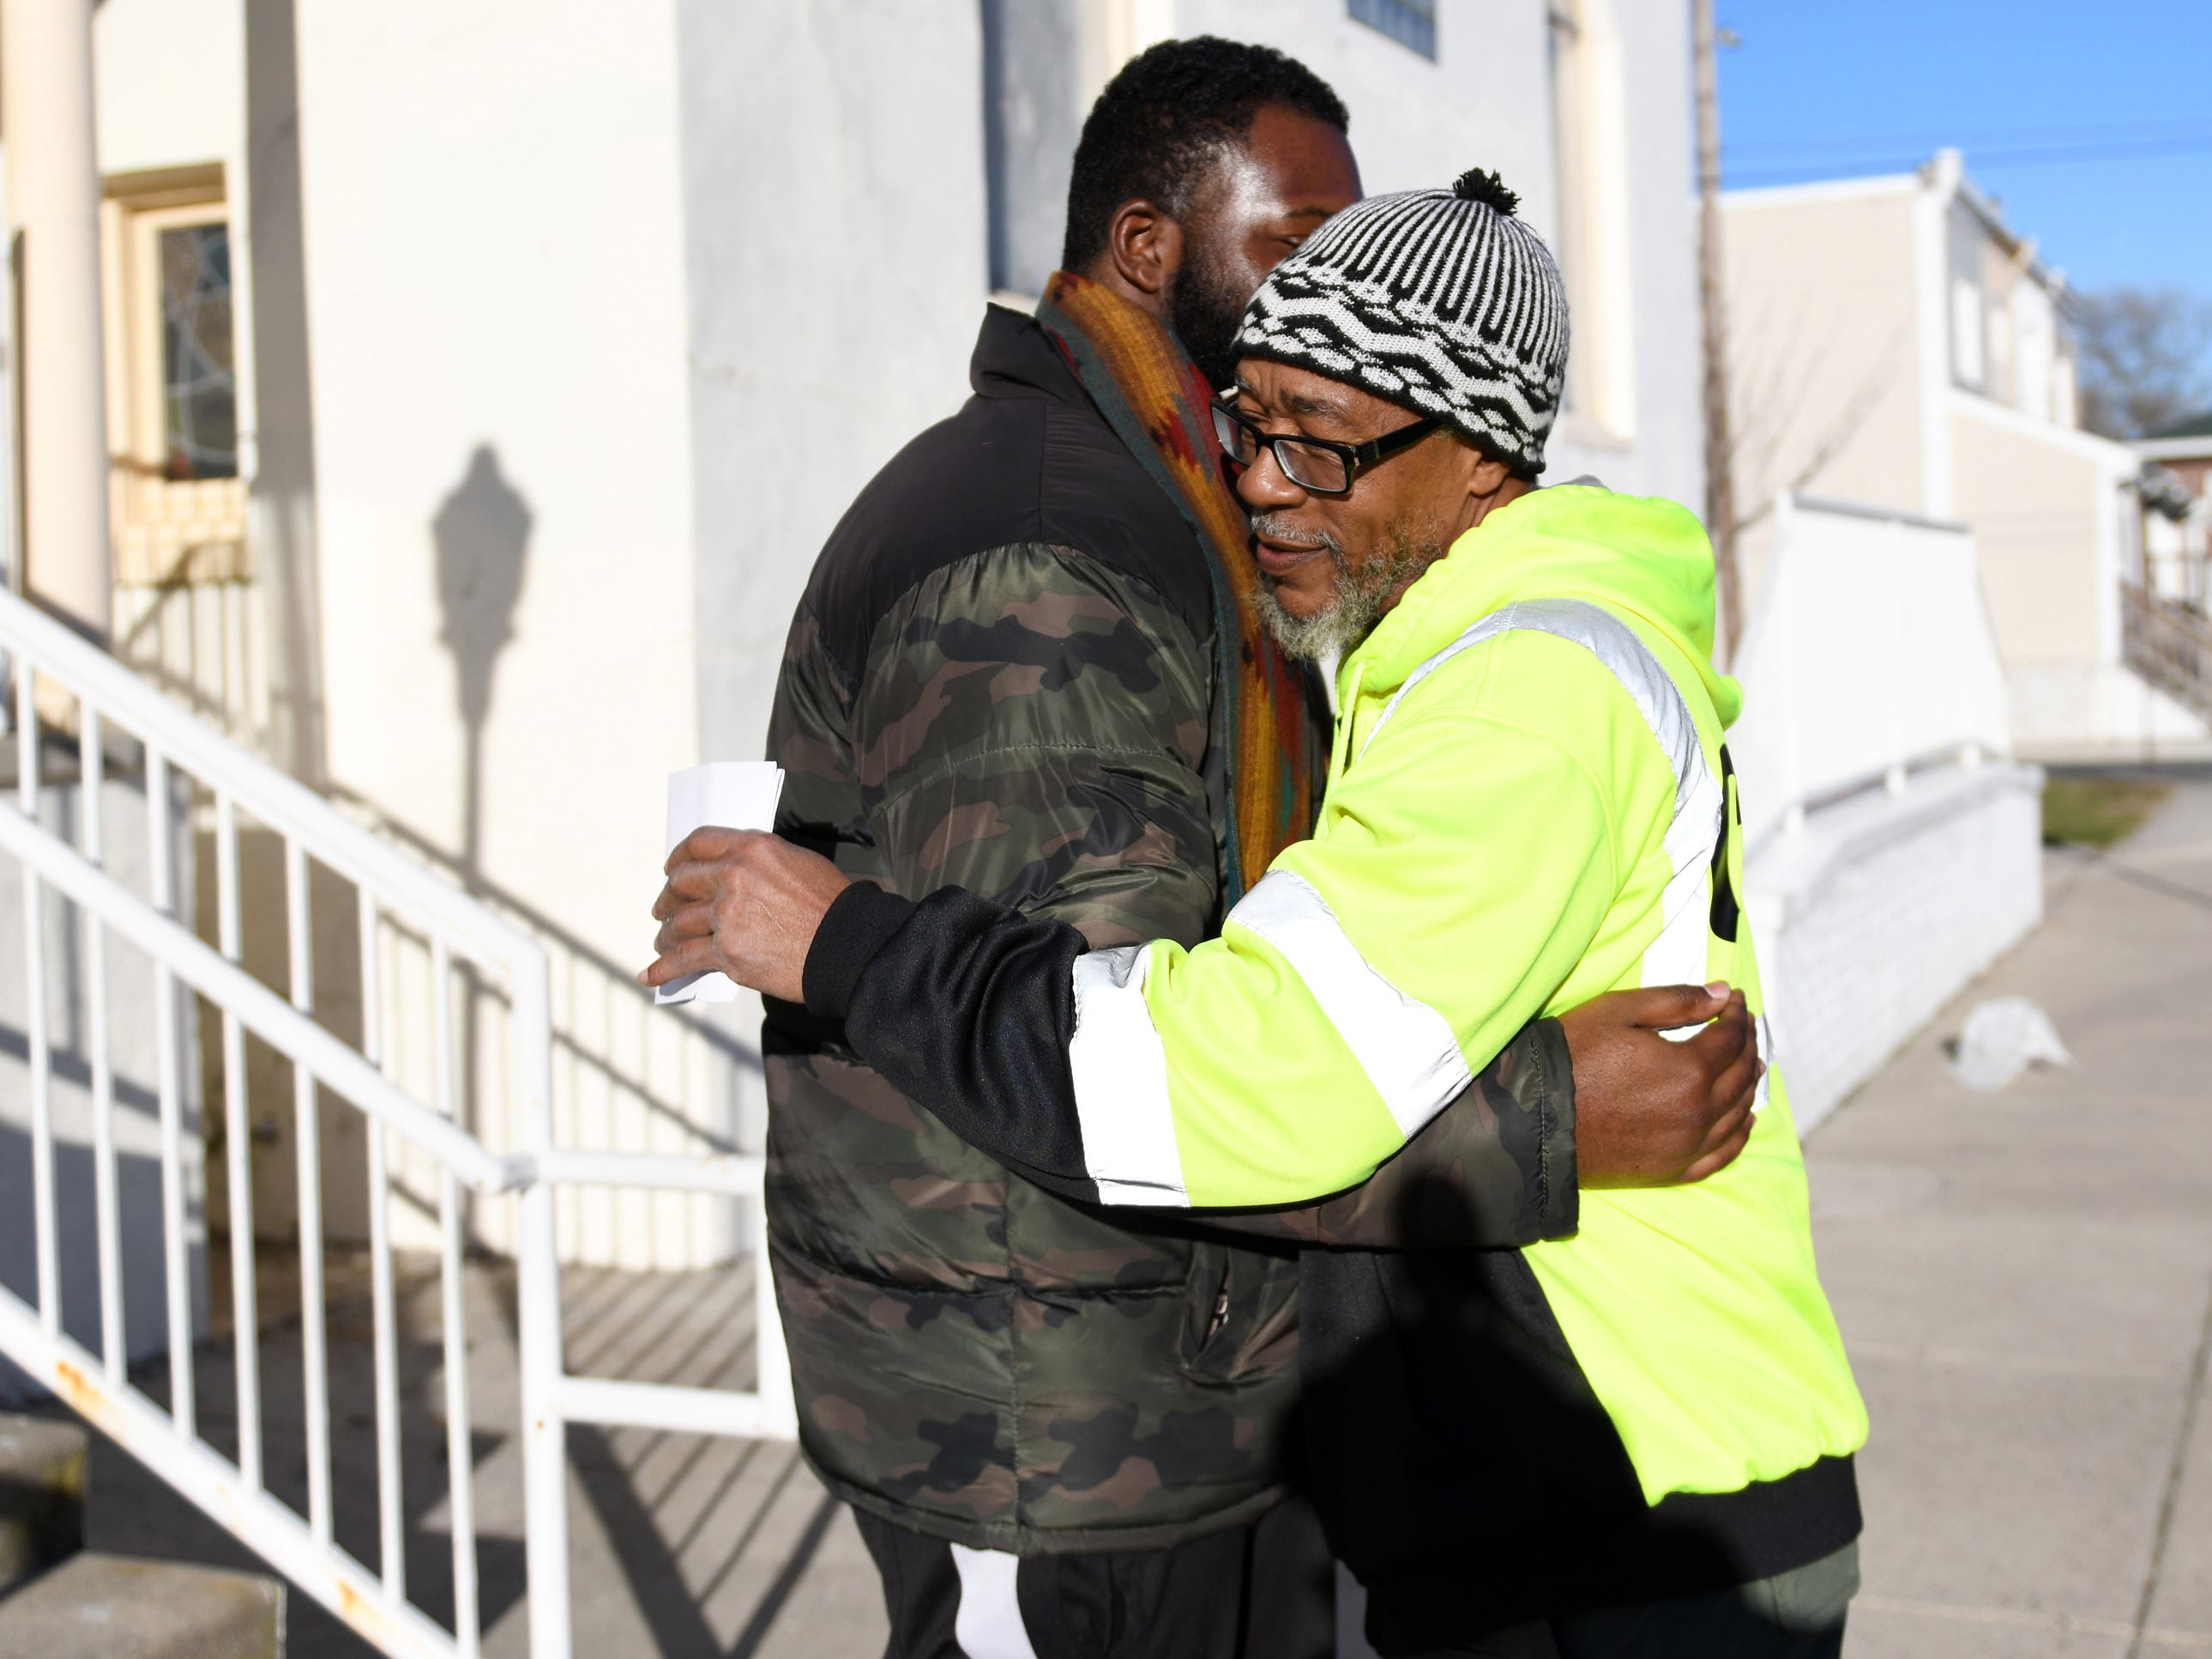 Mr. Safeeullah Muhammad (right) gives a friend a hug outside Allen AME Church on Leeds Avenue in Atlantic City on Friday, Jan. 11, 2019. Muhammad has lived on Dr. Martin Luther King Jr. Boulevard for 17 years.